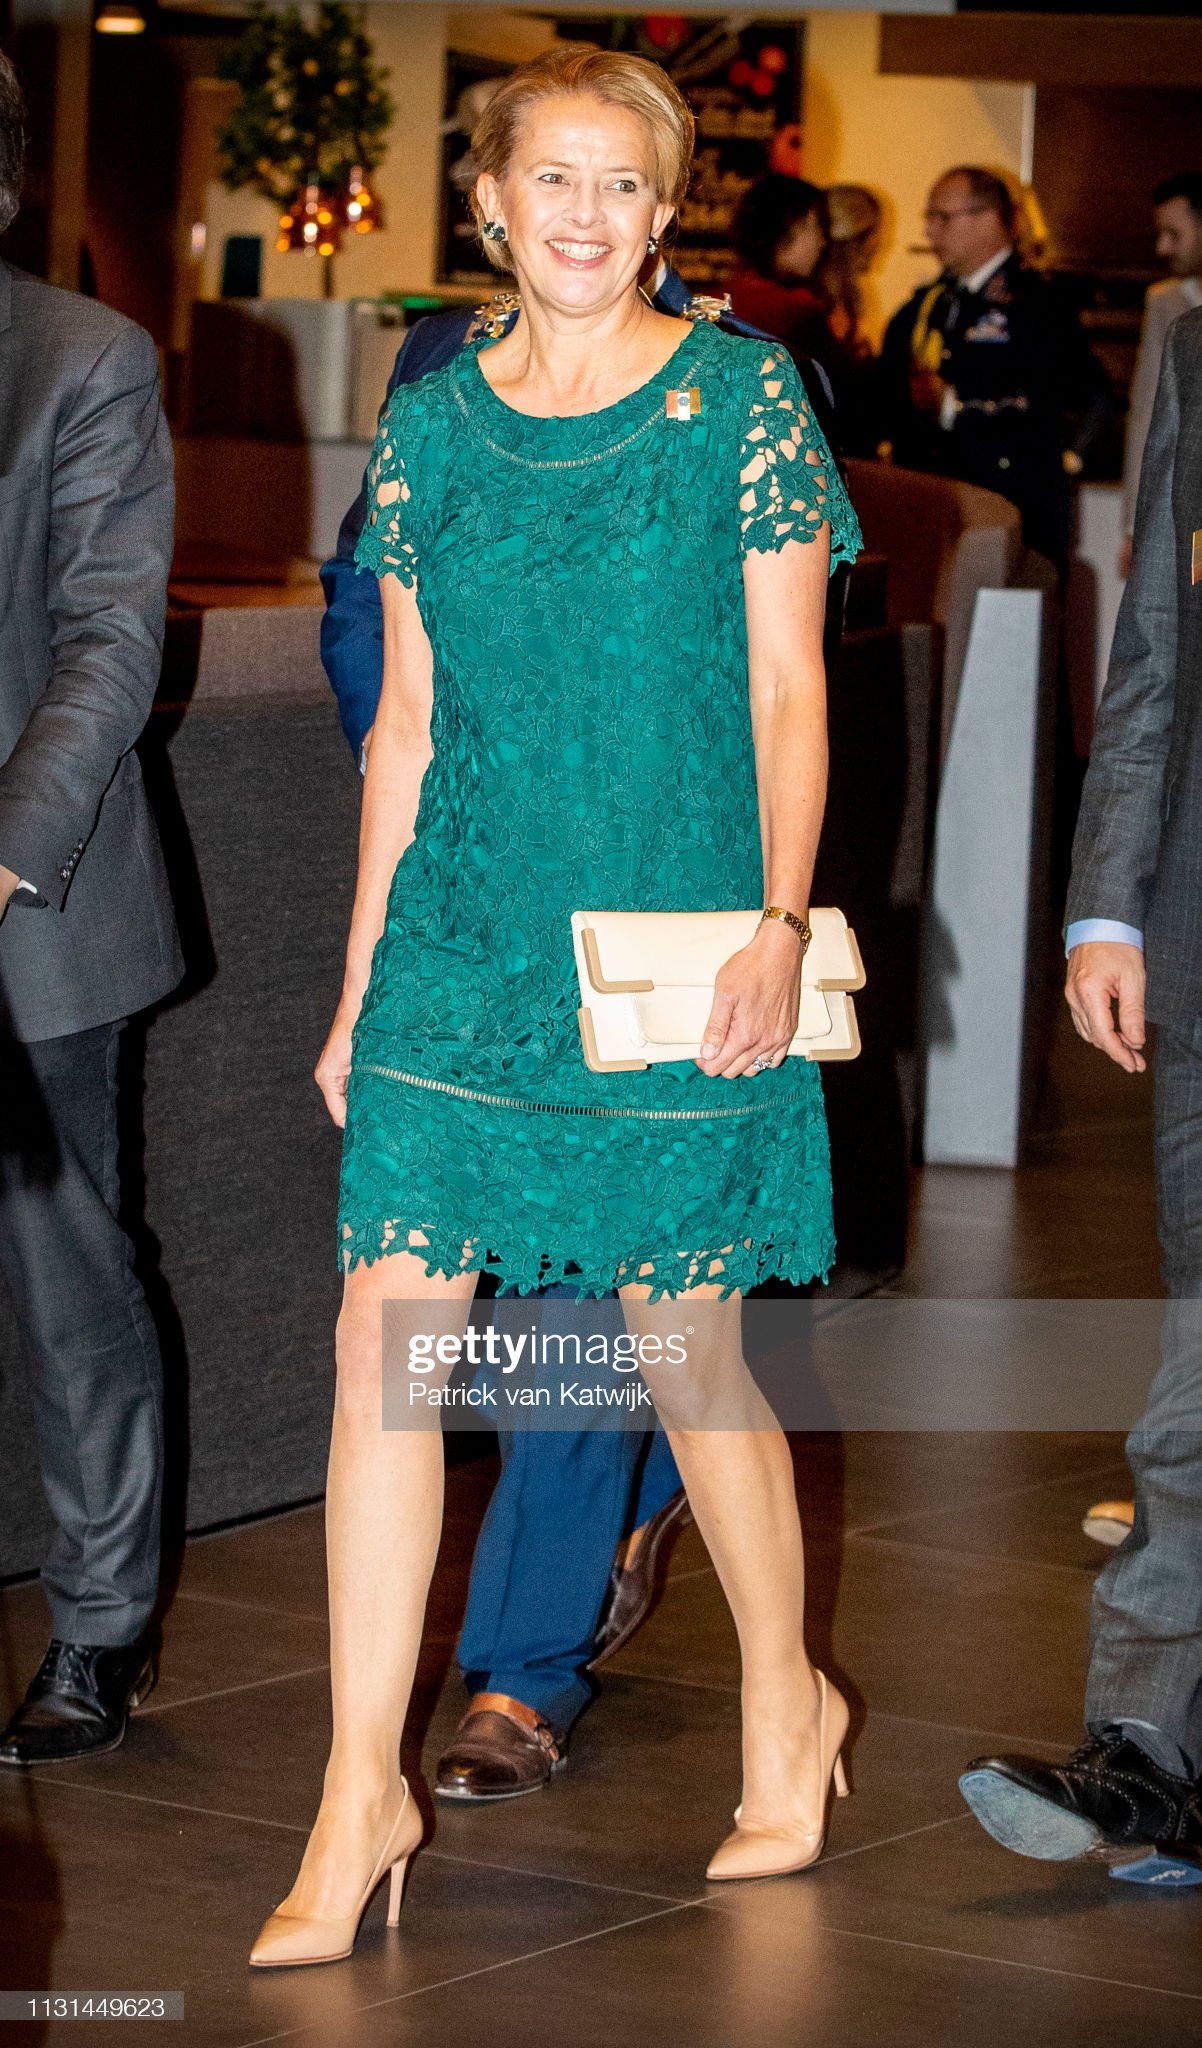 Princess Mabel Of The Netherlands And Princess Beatrix Netherlands Attend The Prince Friso Award In Veldhoven : News Photo